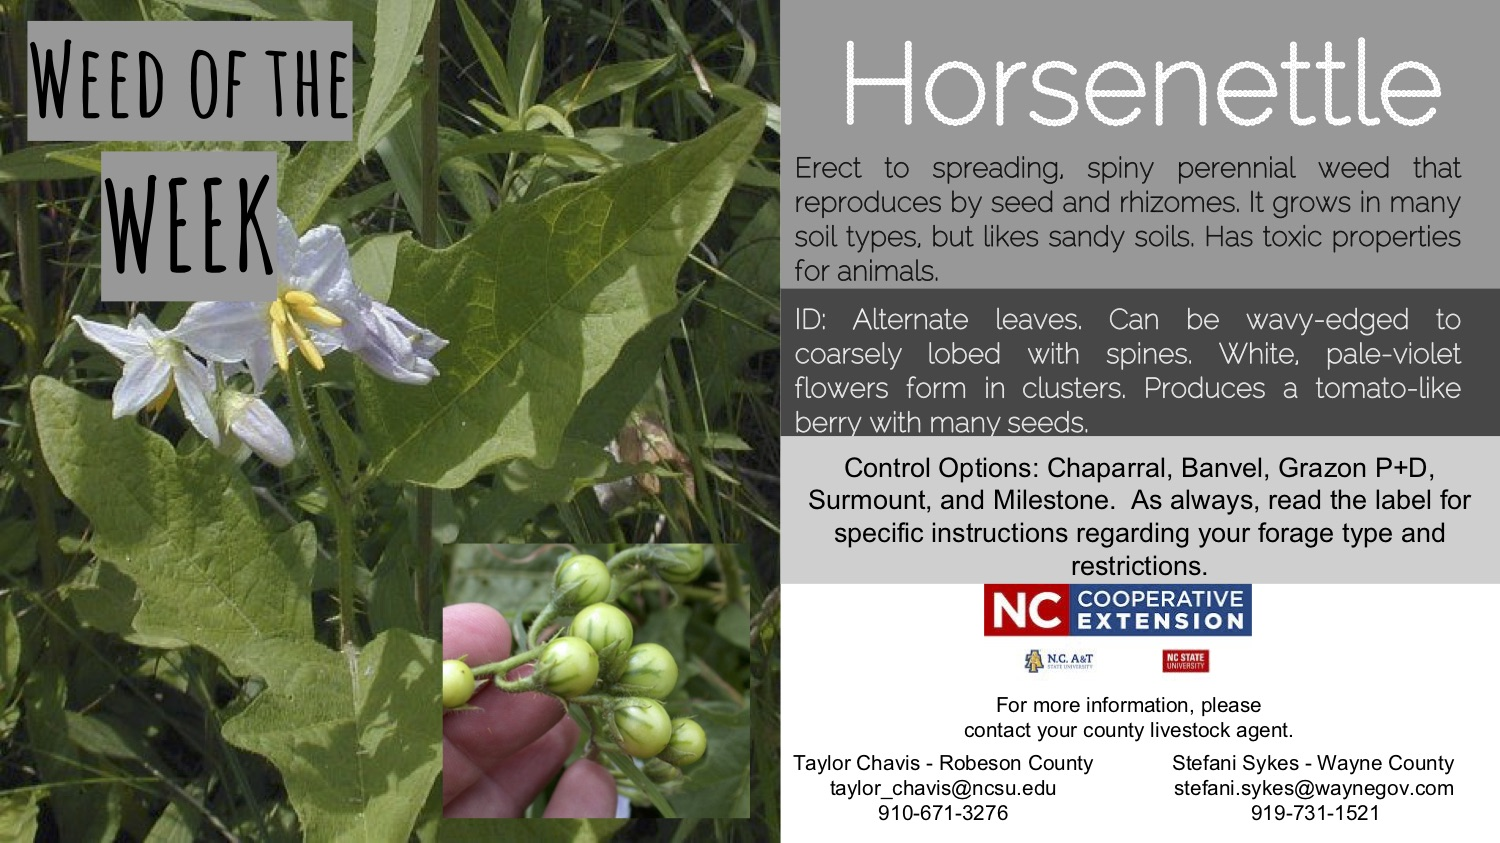 Picture and information on the week horsenettle.